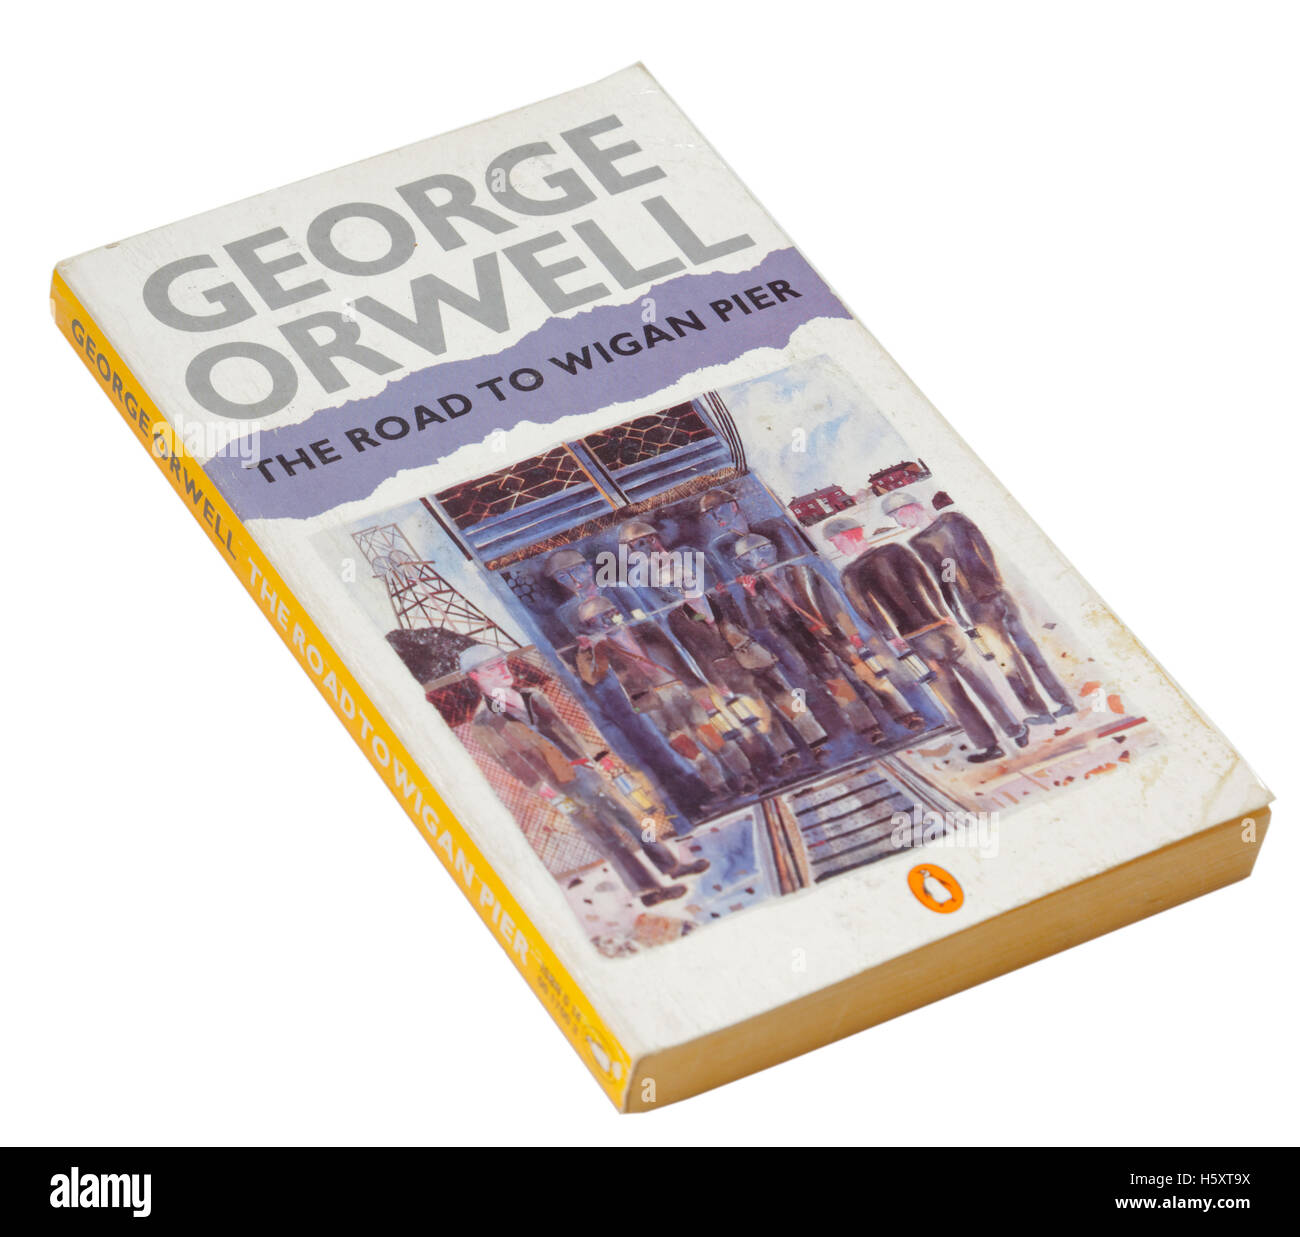 The Road to Wigan Pier by George Orwell - Stock Image